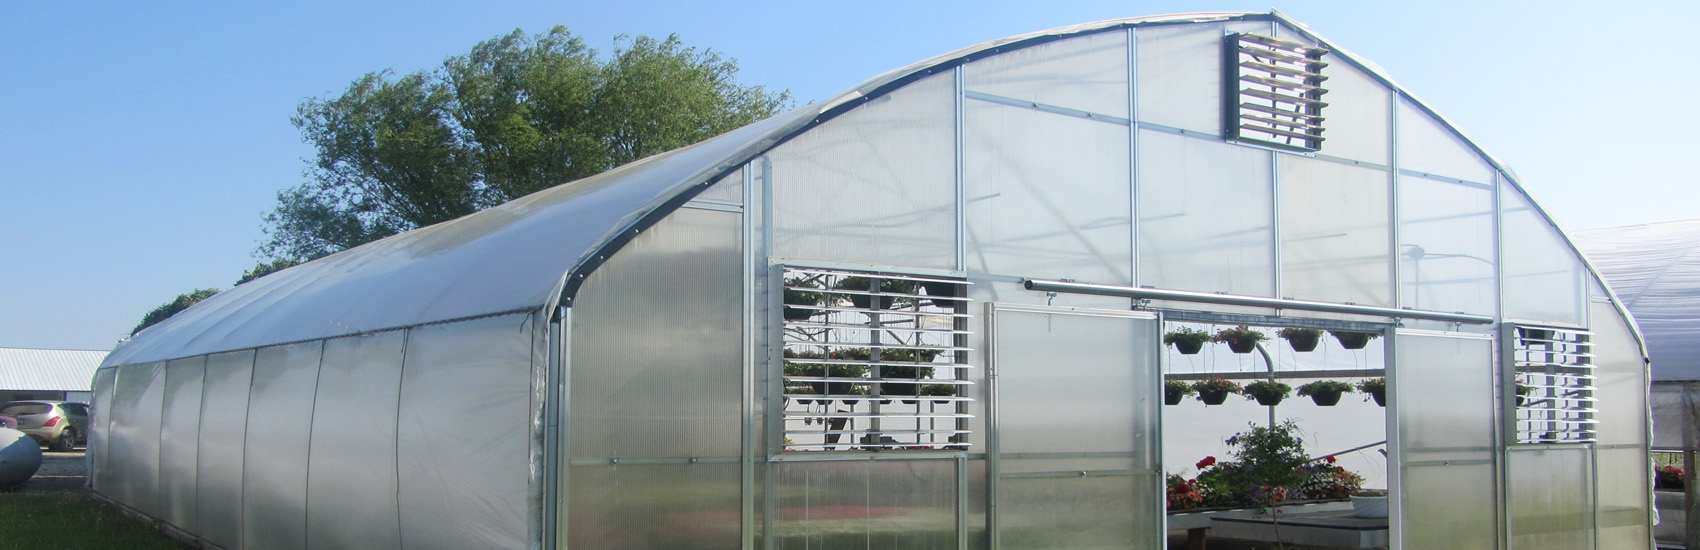 Solo or Gutter Connected Greenhouses